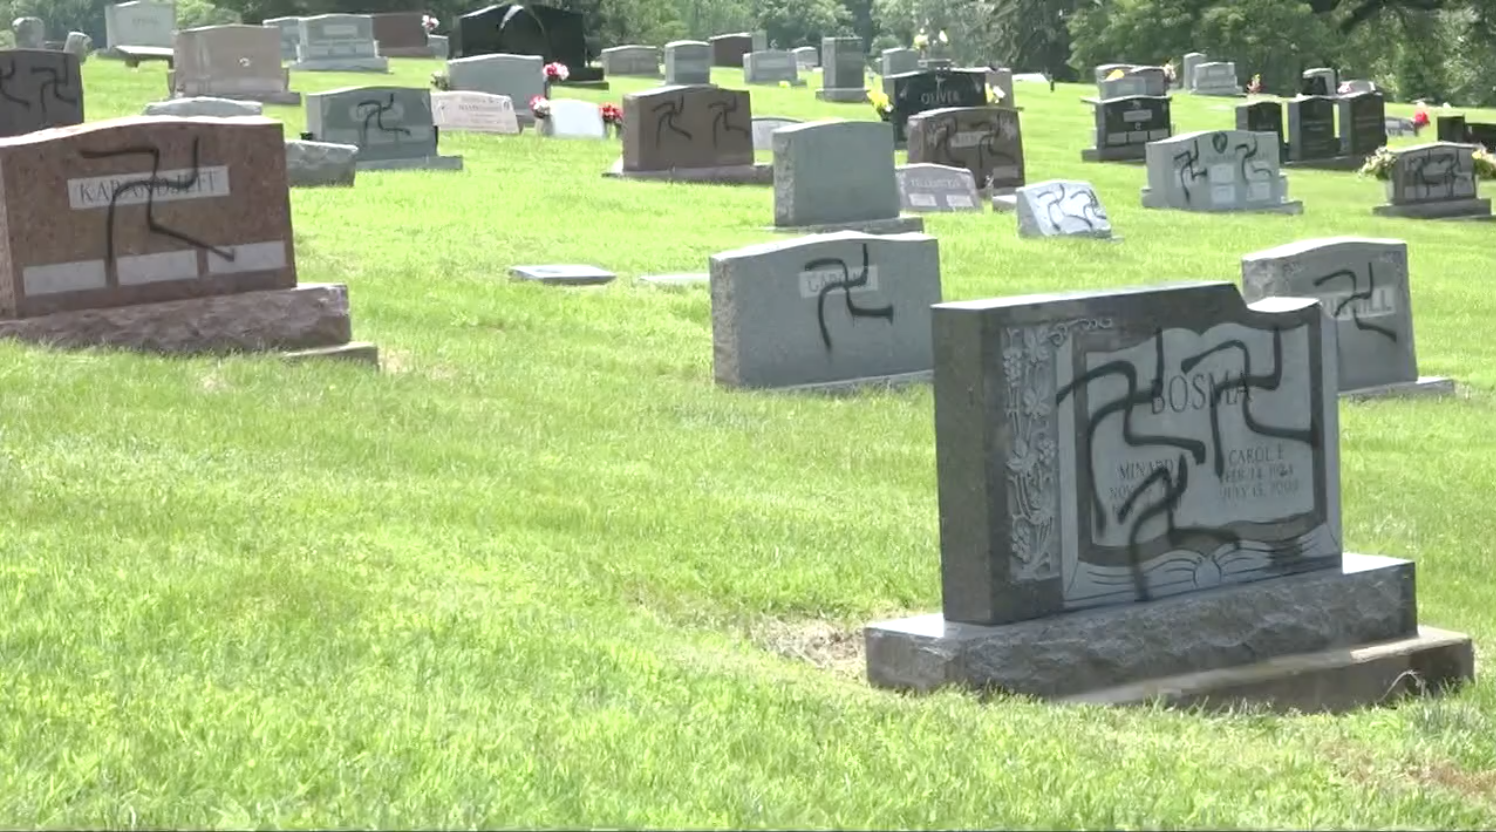 A screenshot shows headstones at the Sunset Hill Cemetery in Glen Carbon, Illinois on May 26, 2018.